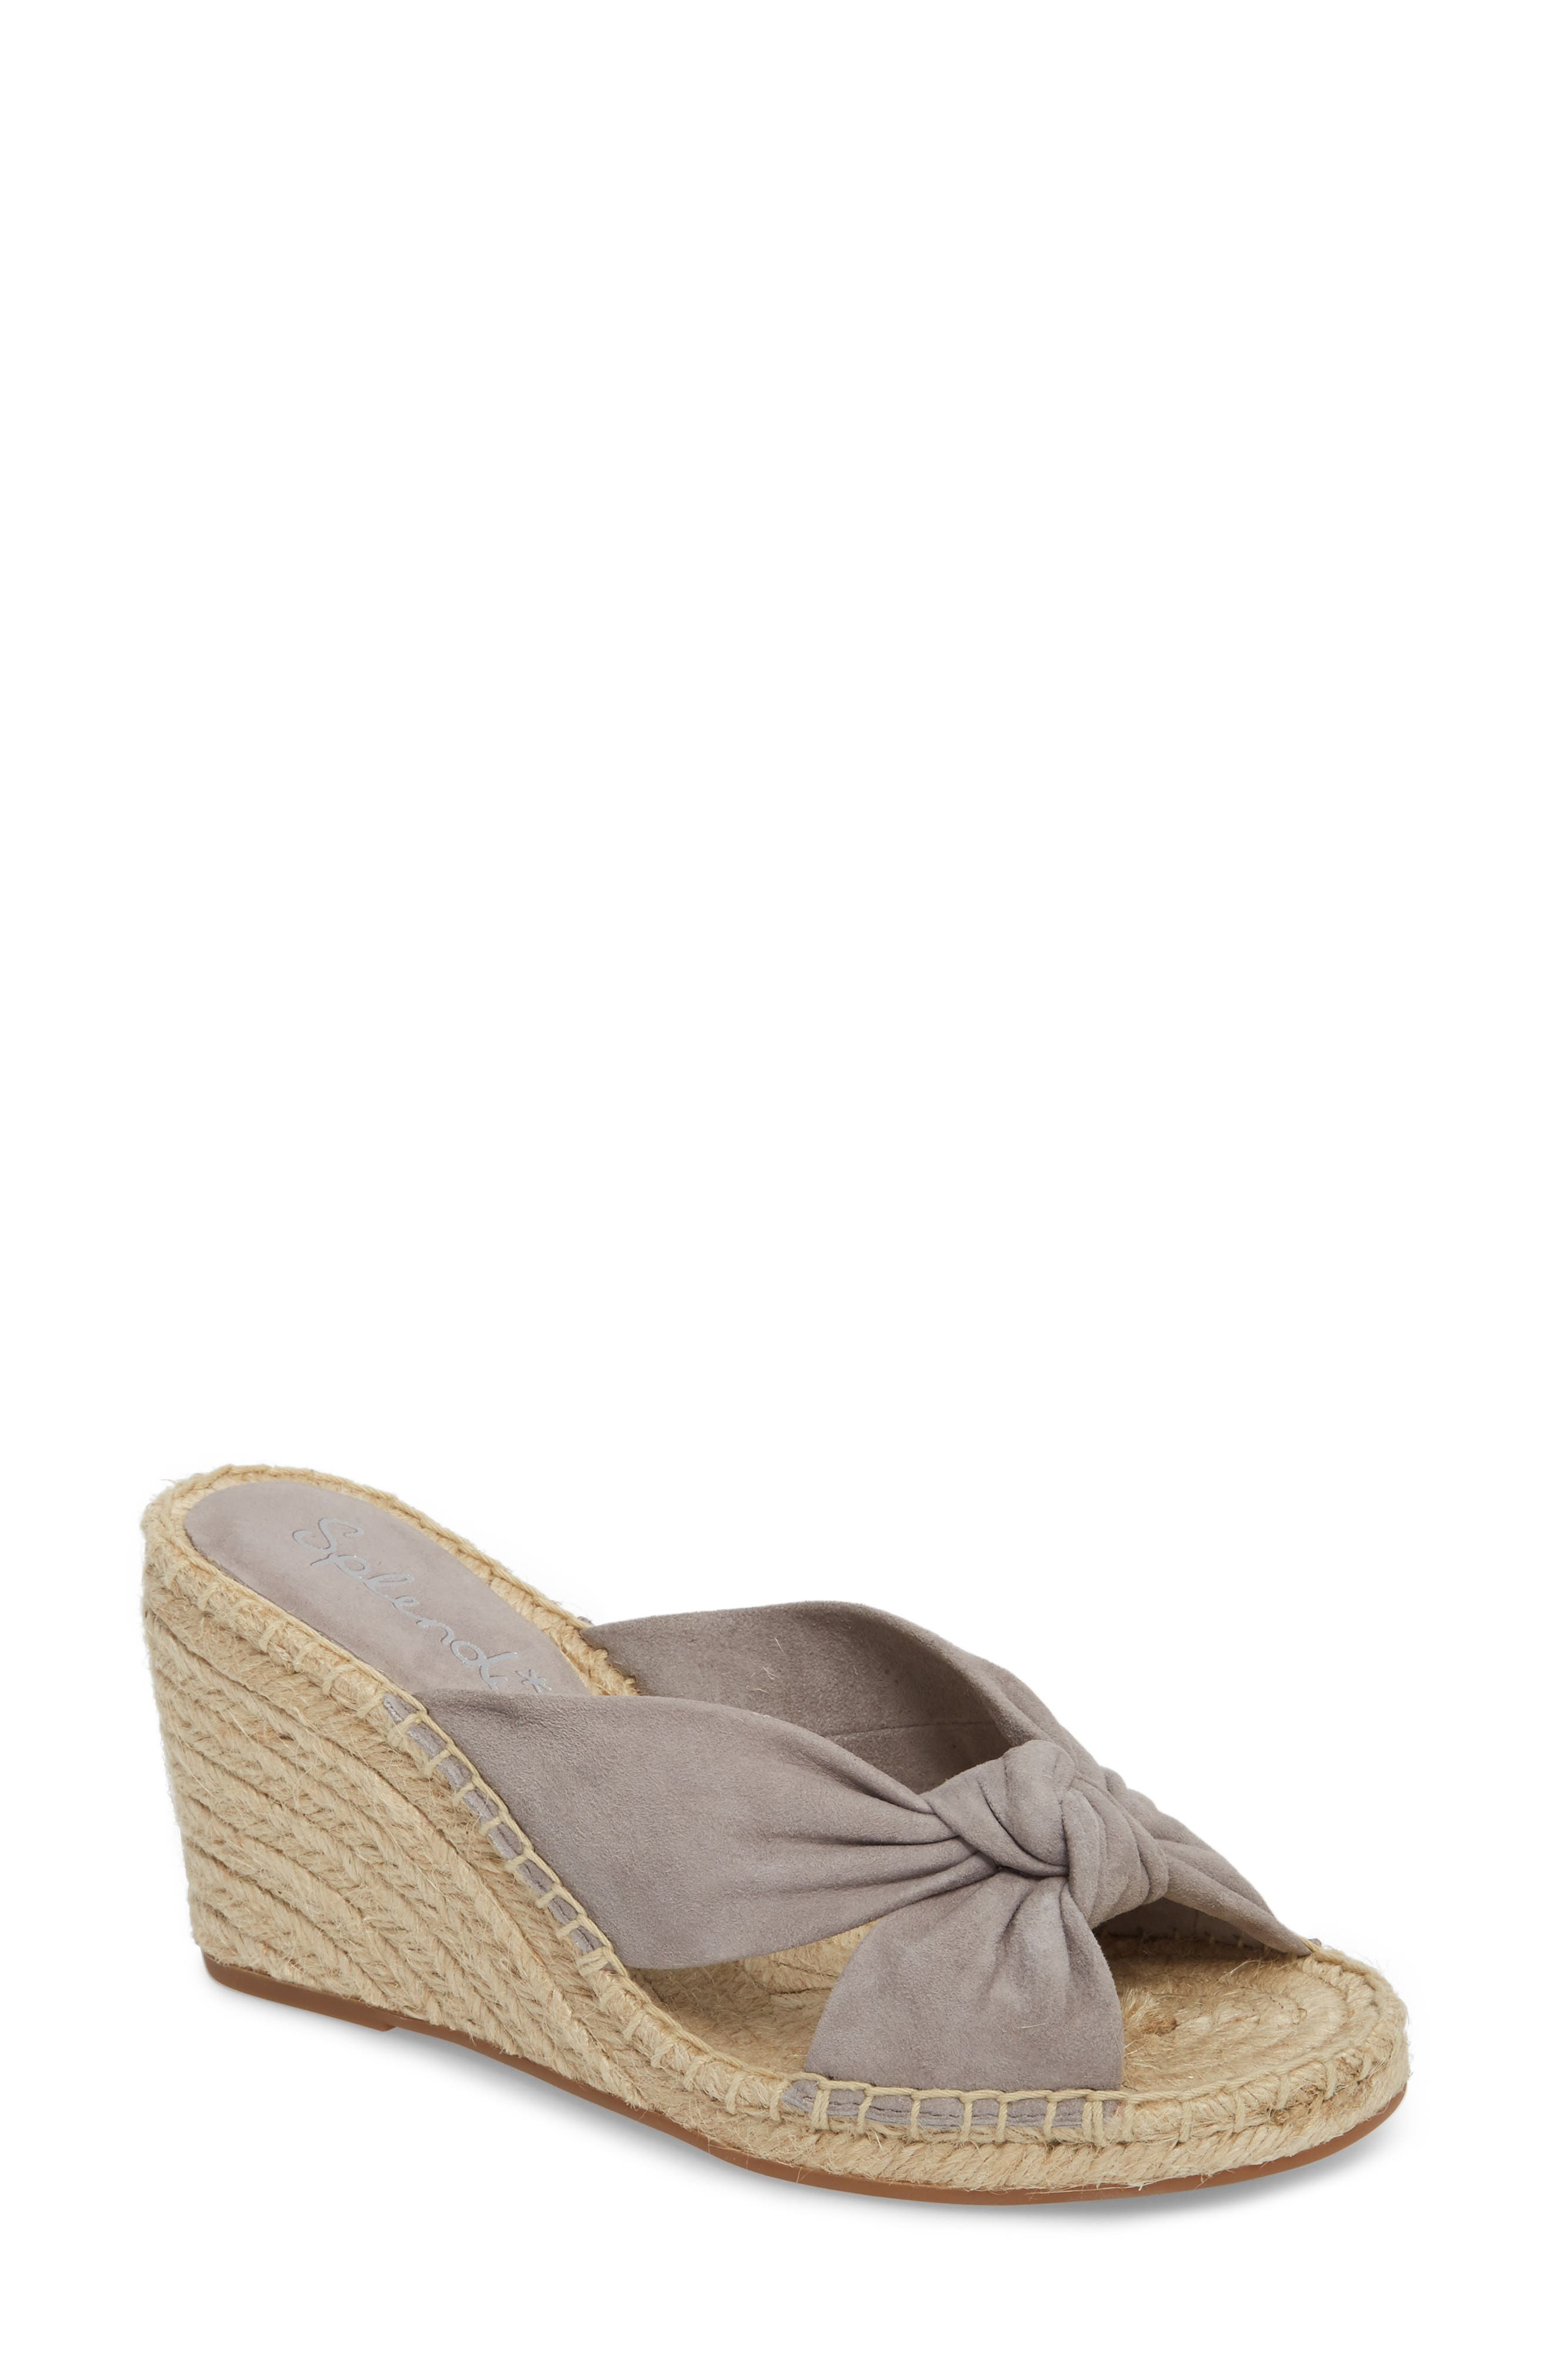 Bautista Knotted Wedge Sandal,                         Main,                         color, Grey Suede